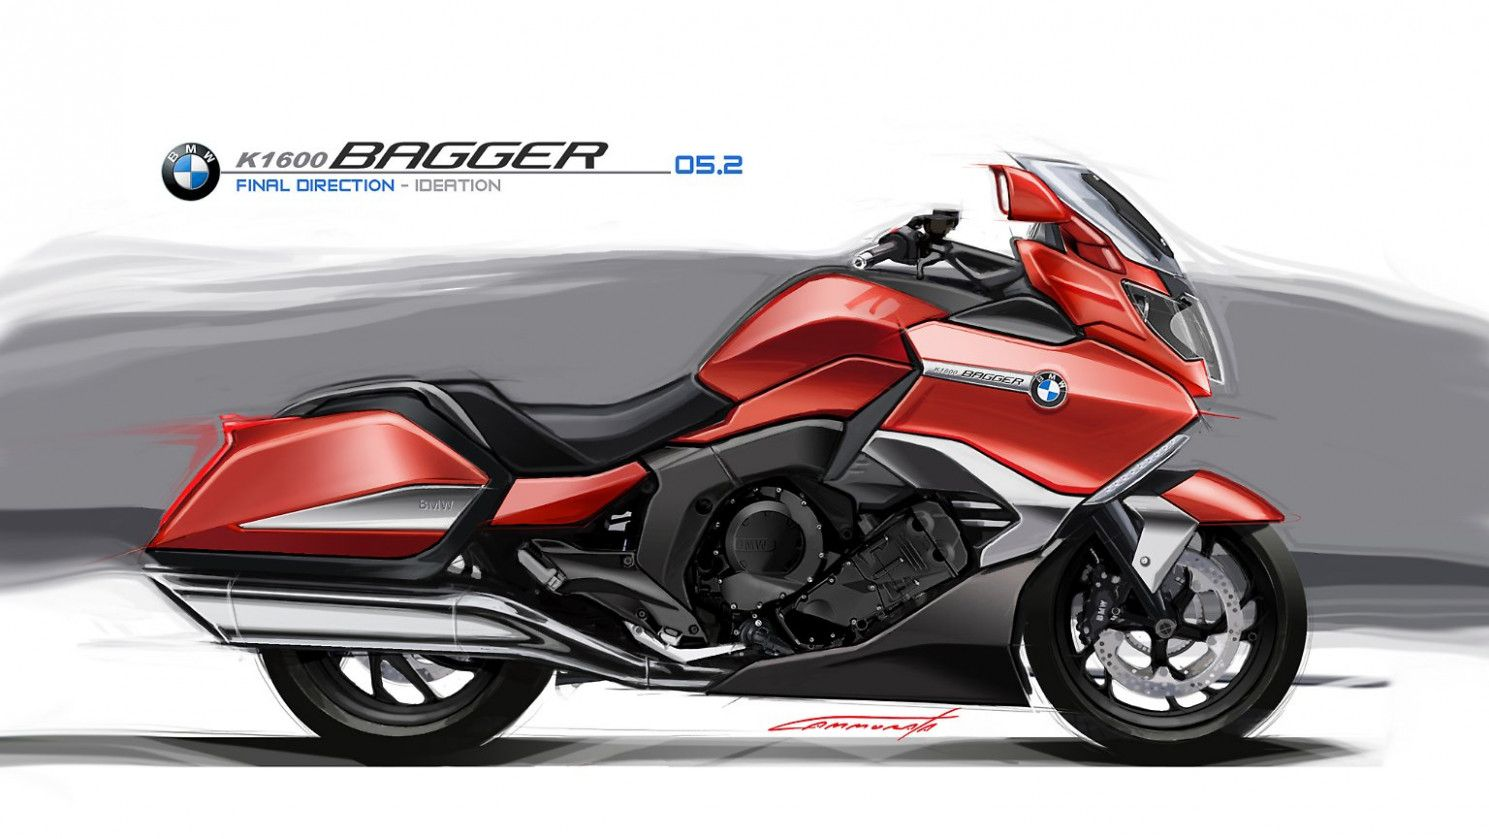 2020 Bmw Bagger Motorcycle Design 2017 Bmw Bmw Motorcycles